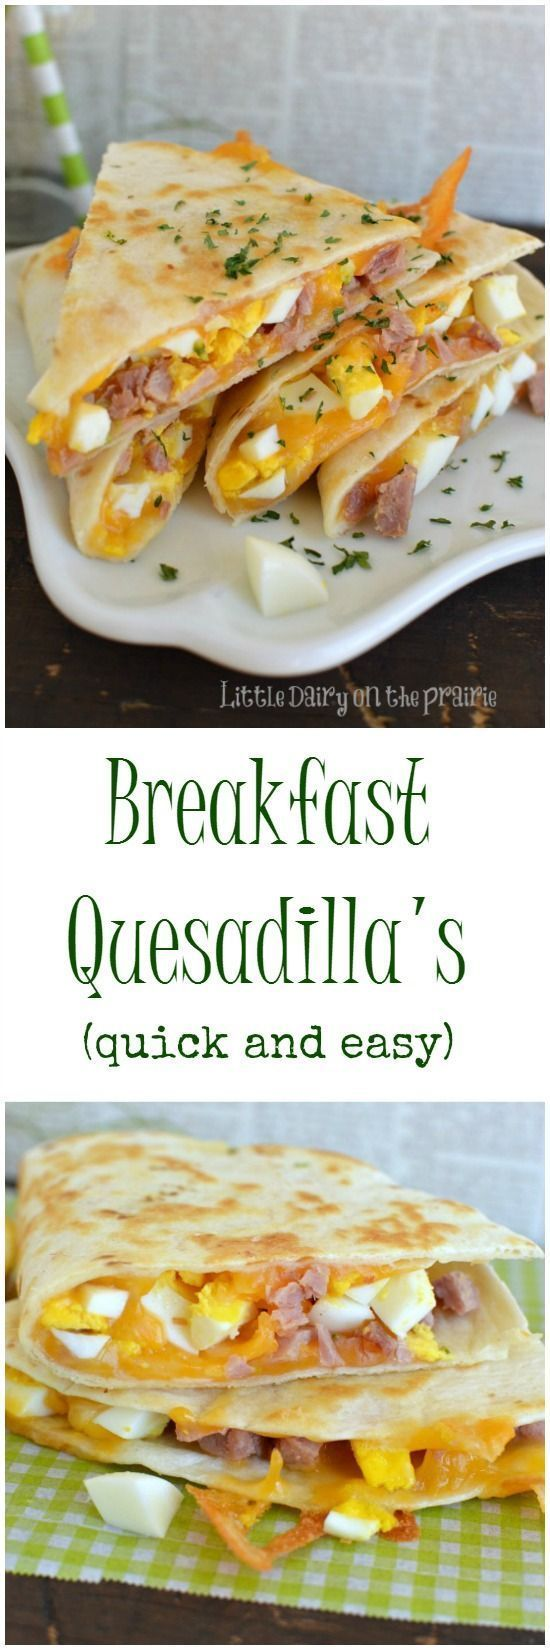 Furniture Designs: Ham and Cheese Breakfast Quesadillas